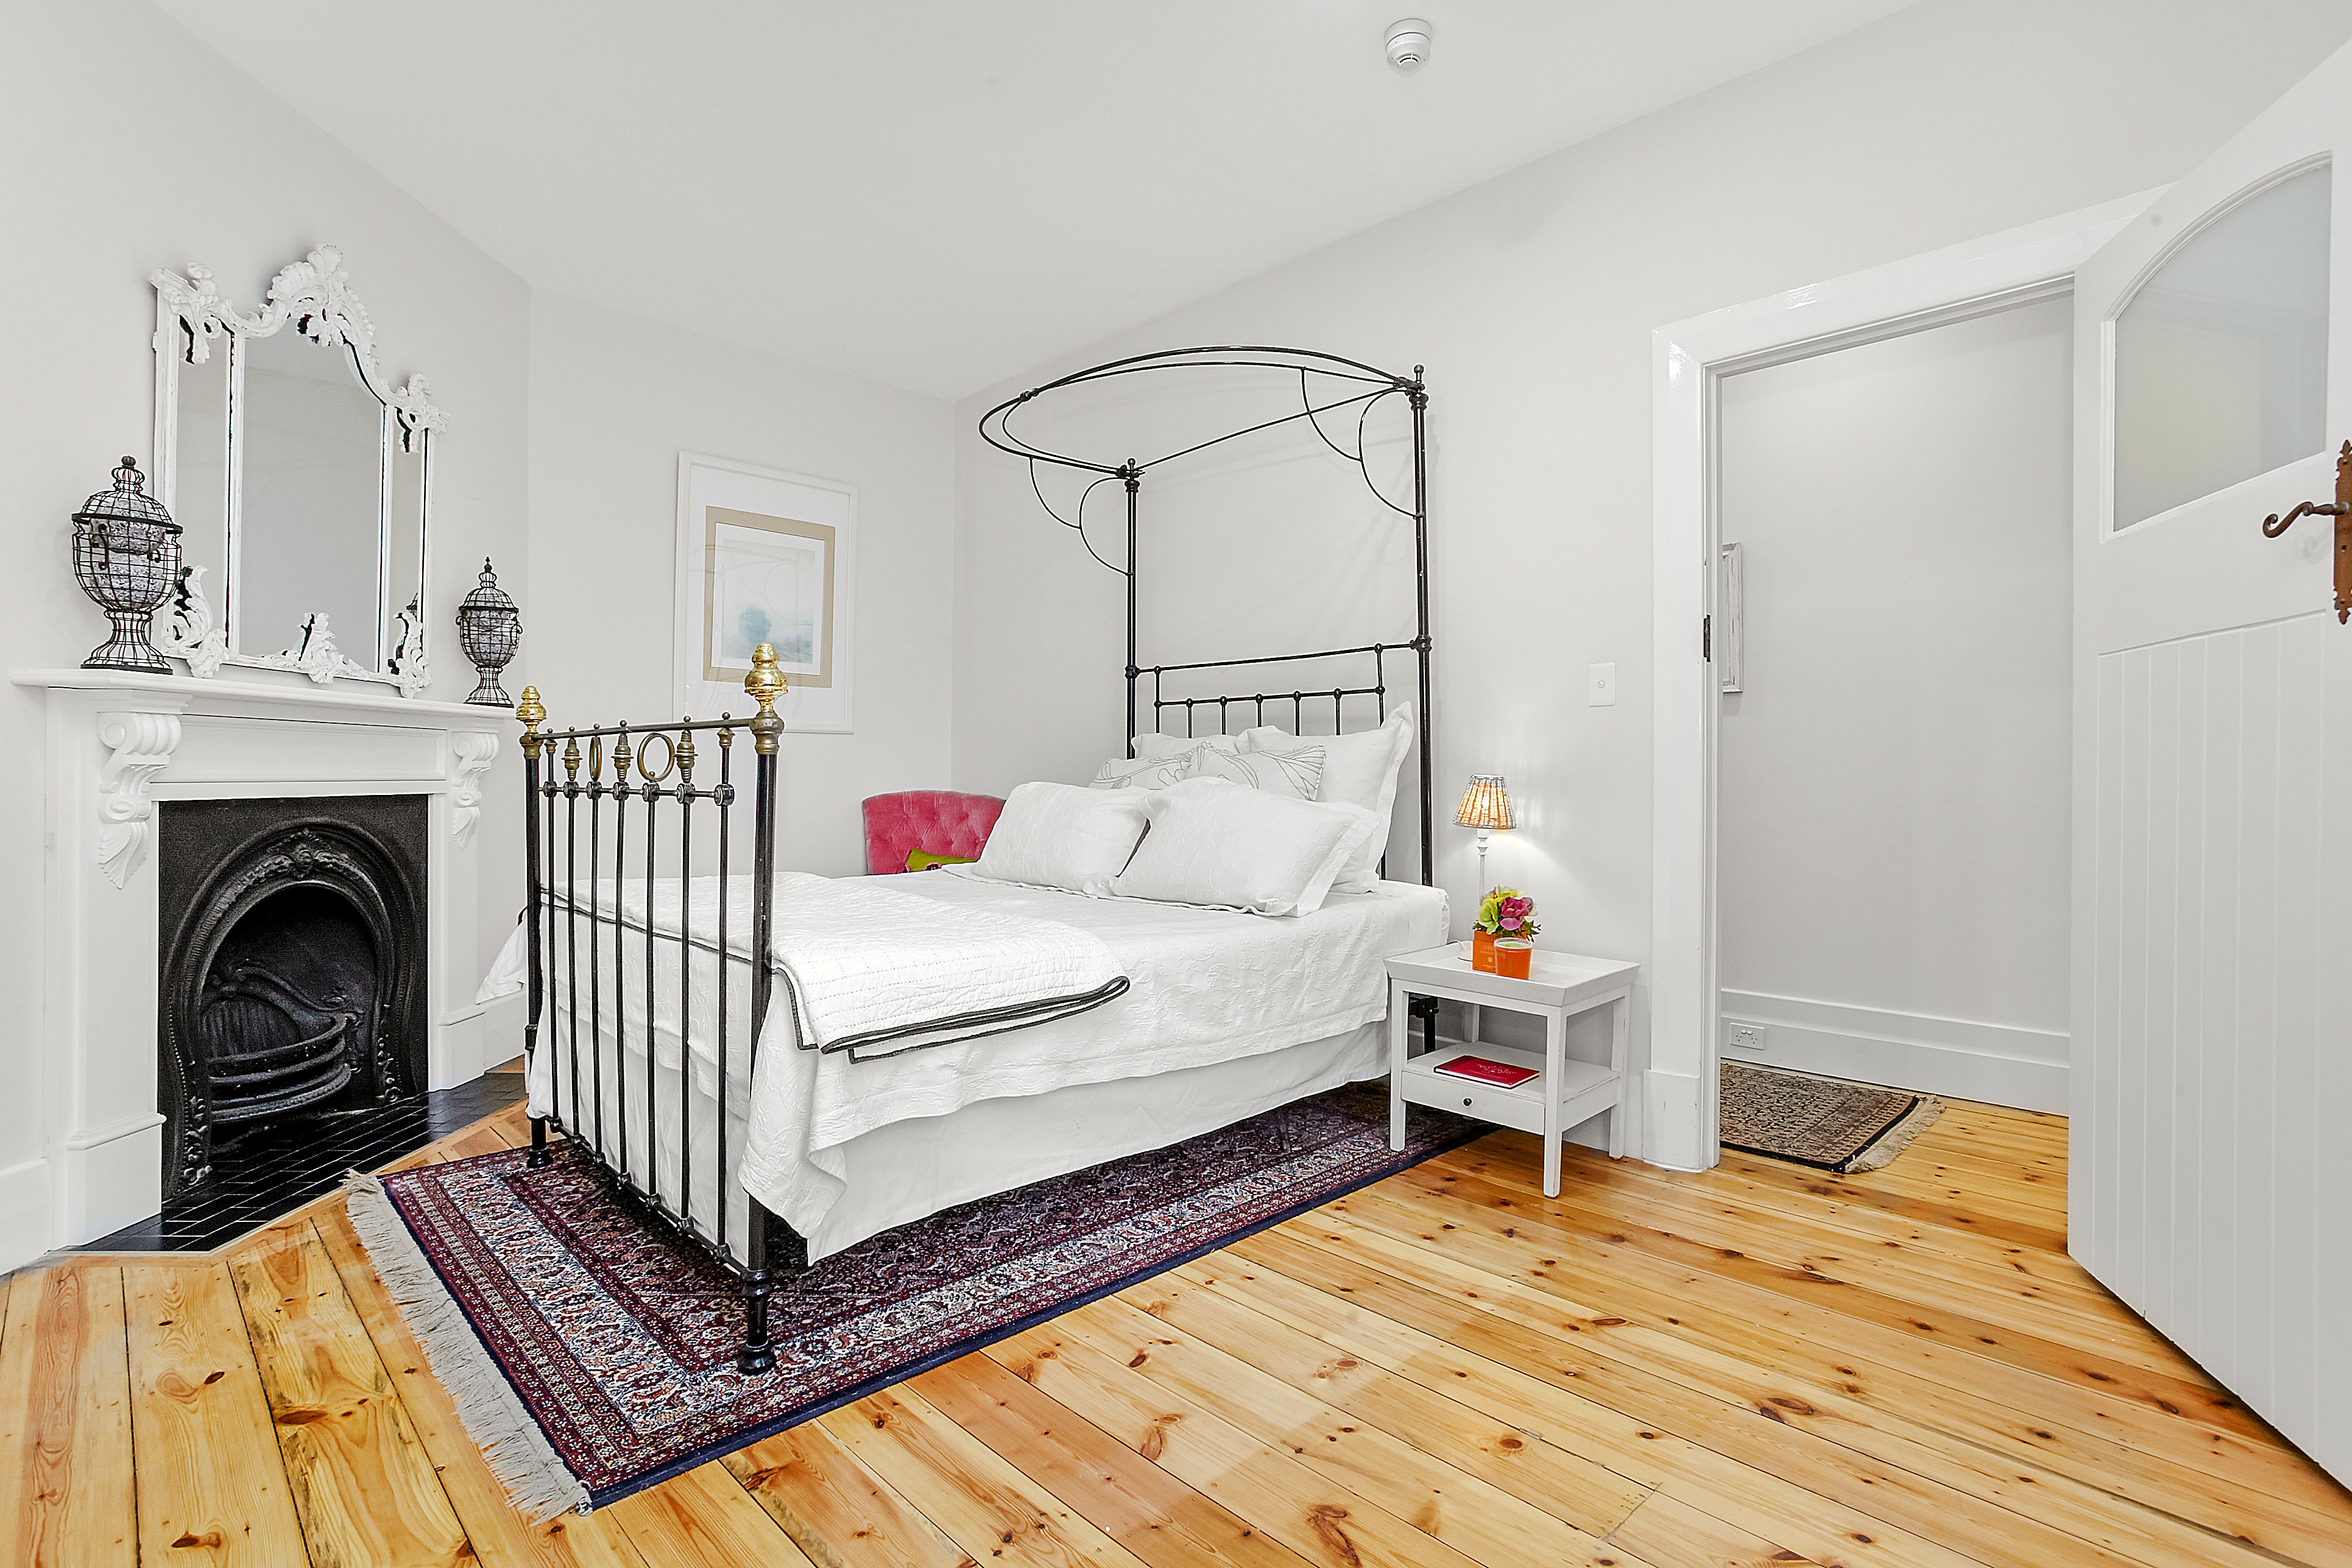 11-243-beaconsfield-parade-middle-park-student-accommodation-Melbourne-Bedroom-Unilodgers